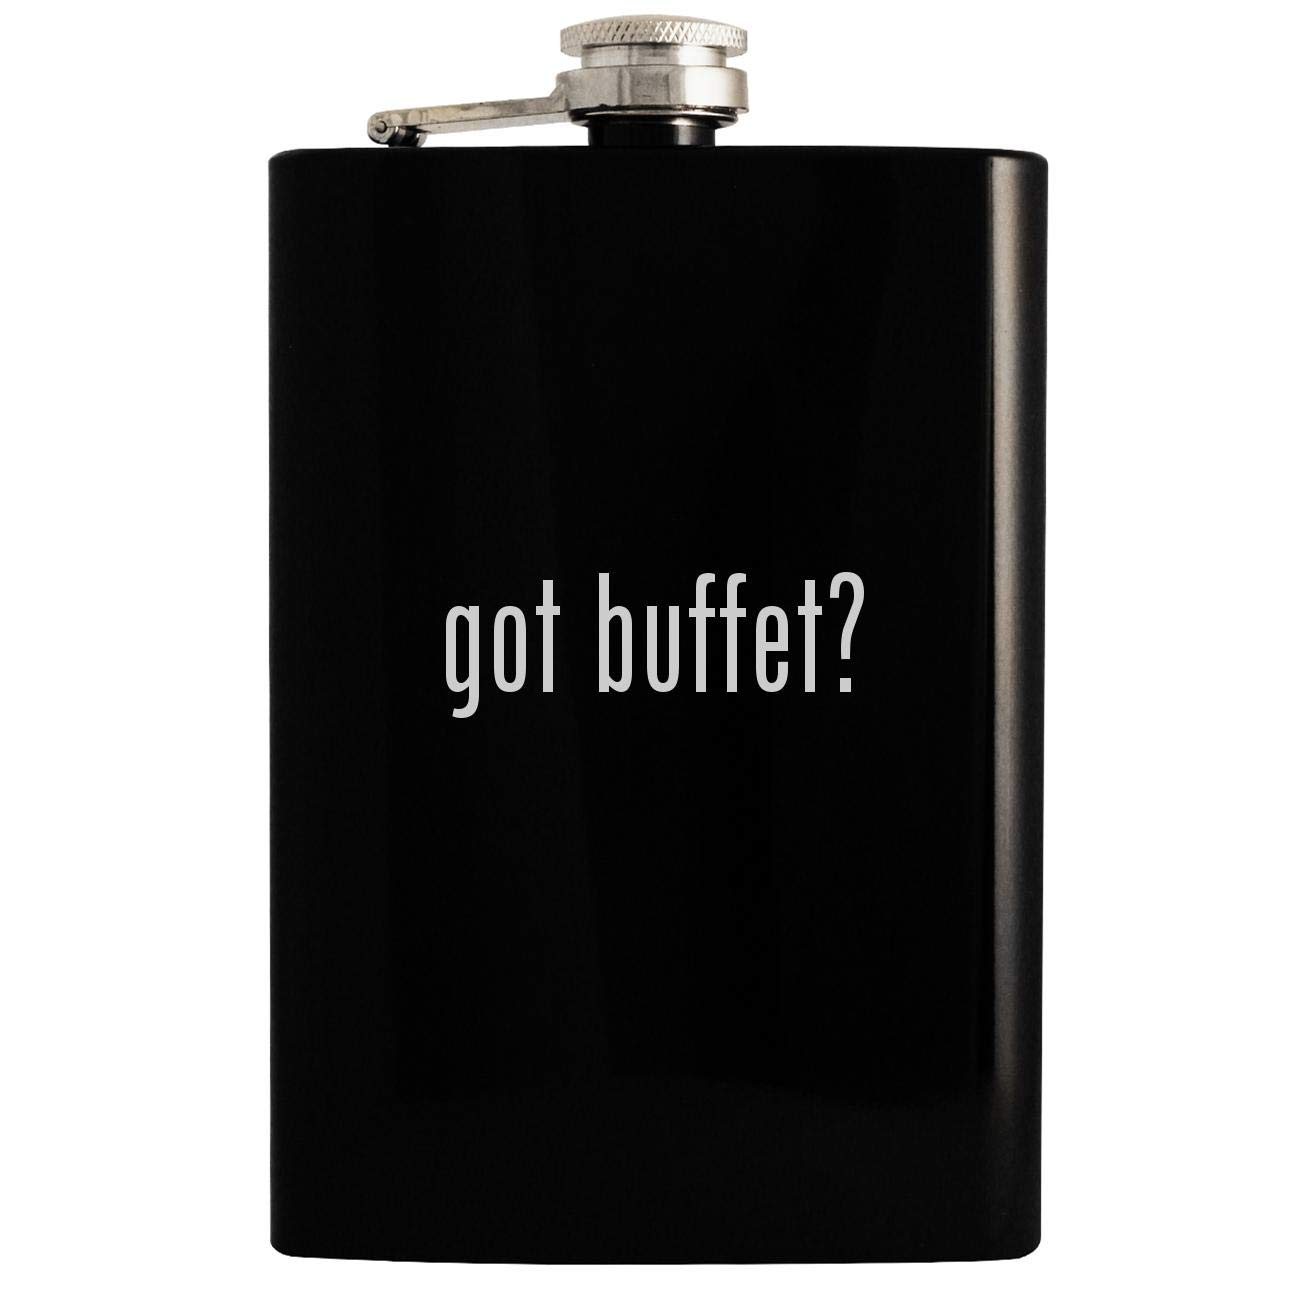 got buffet? - 8oz Hip Drinking Alcohol Flask, Black by Knick Knack Gifts